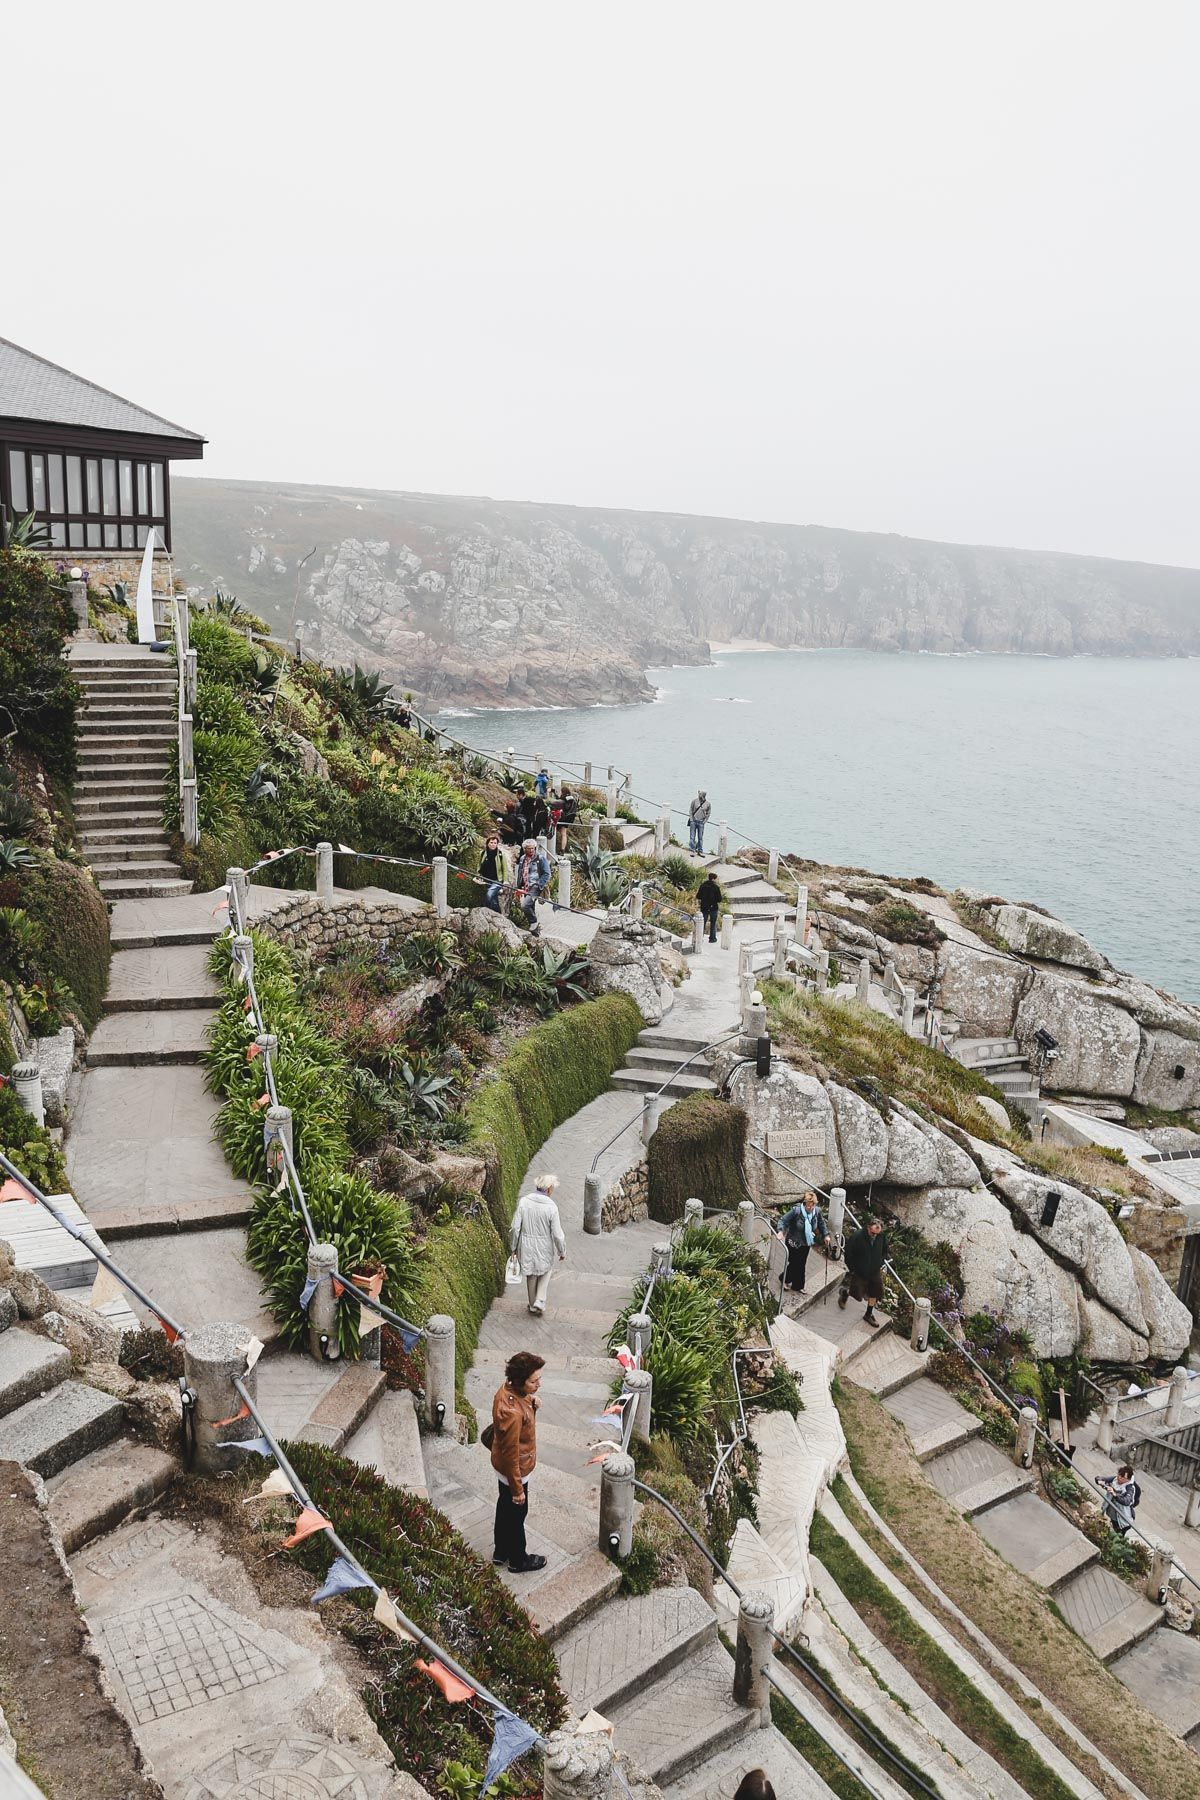 Minack Theatre The Theater by the Sea in Cornwall The